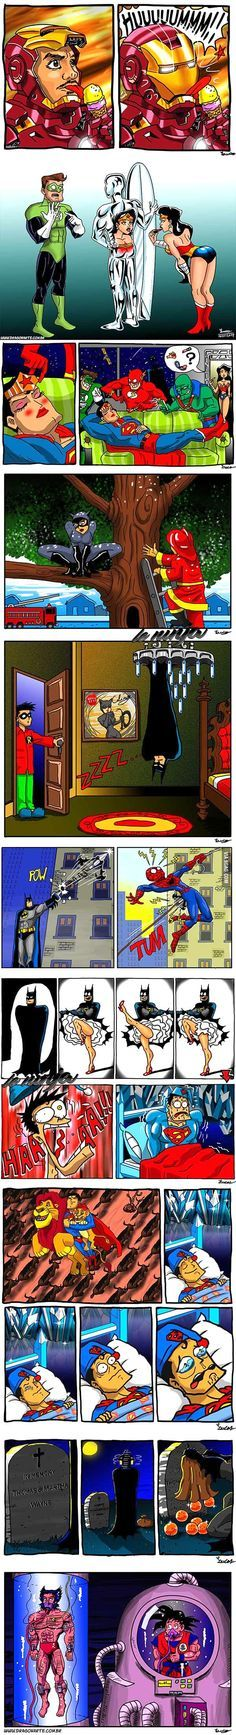 How #Superheroes relax :)